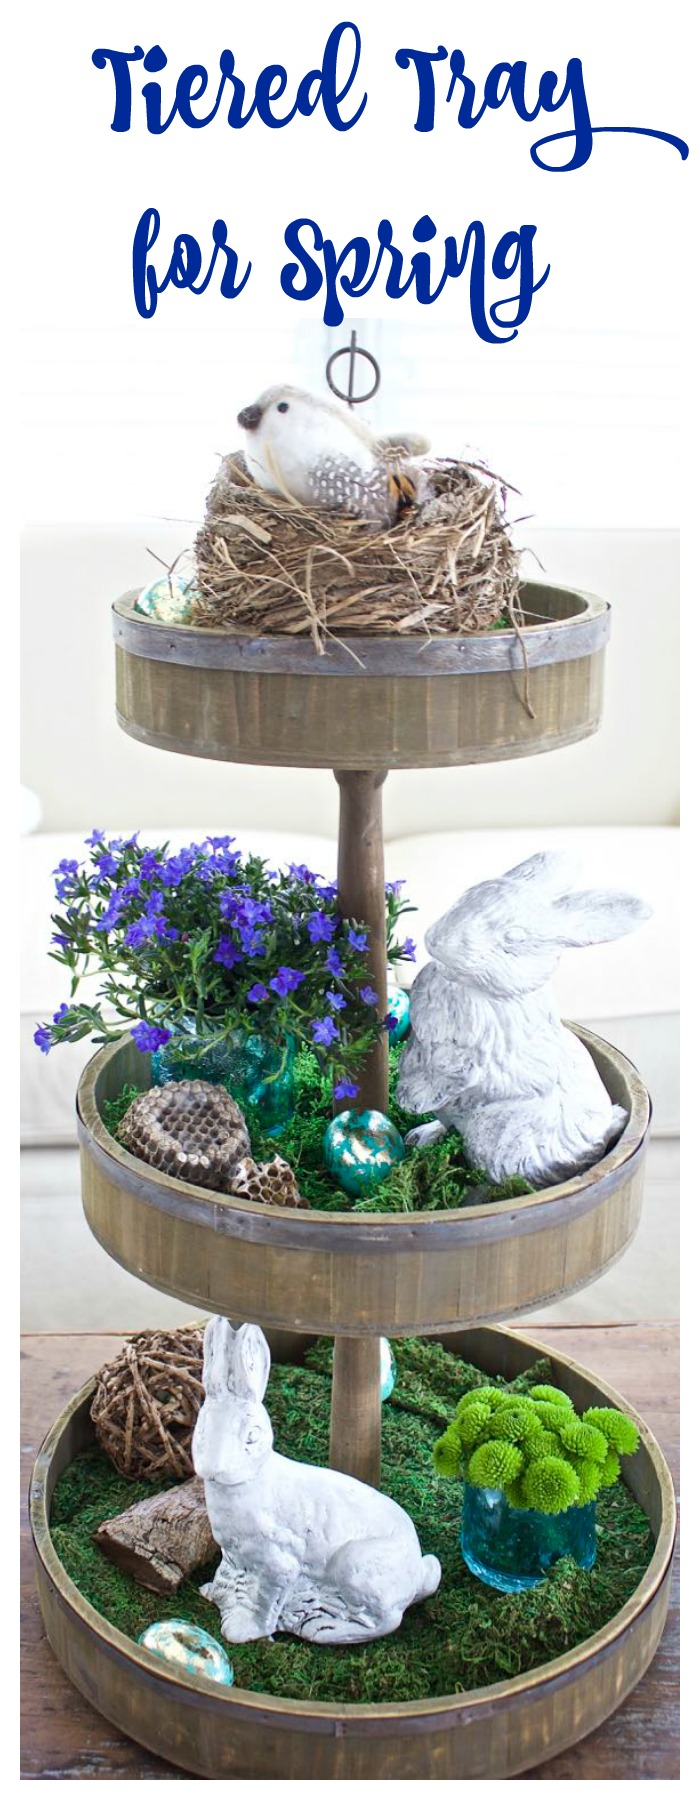 Tiered Tray for Spring and Easter